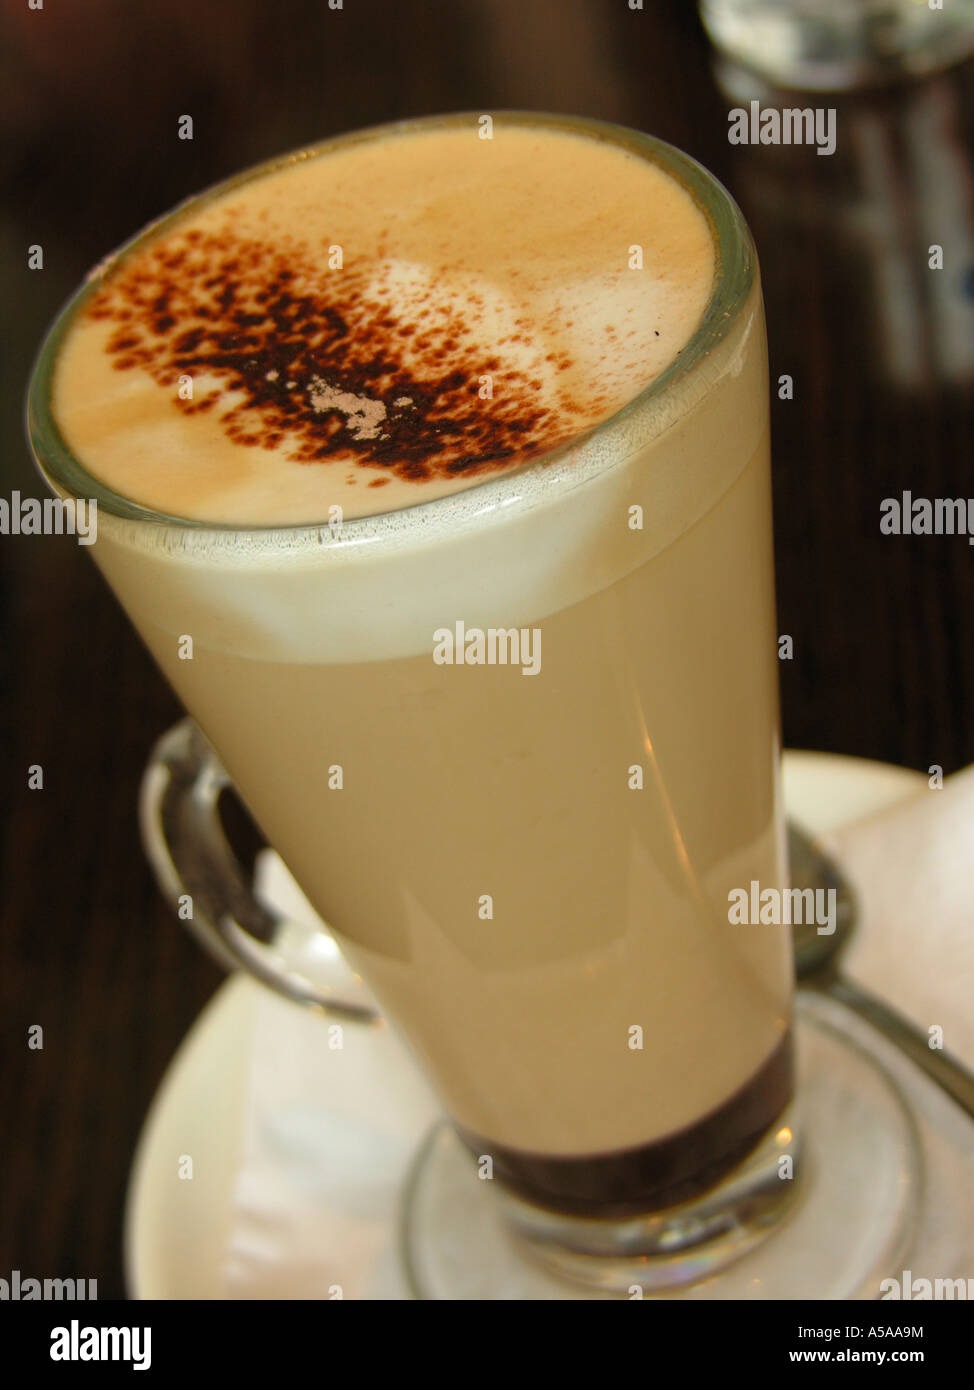 Cafee latte with frothed milk in high glass cup on white saucer - Stock Image